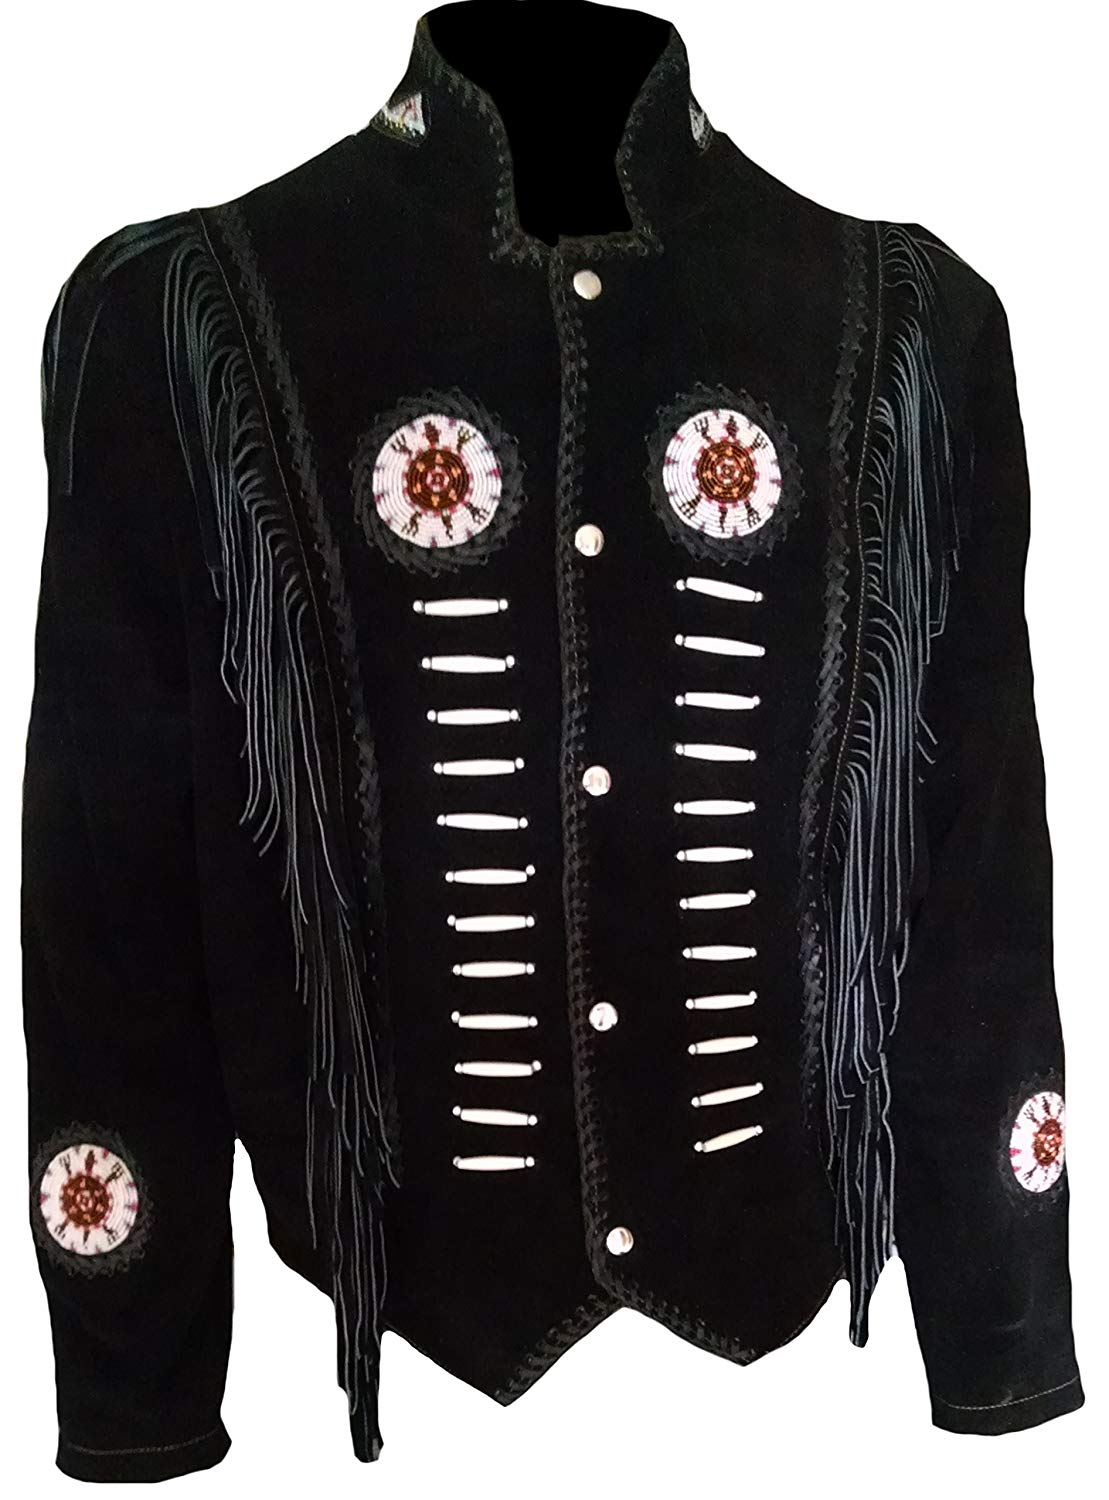 4b5a705f ... Style Cowboy Jacket with Fringe and Beaded Small to 4XL. null. null.  Get Quotations · SleekHides Men's Western Suede Leather Fringed & Boned  Jacket